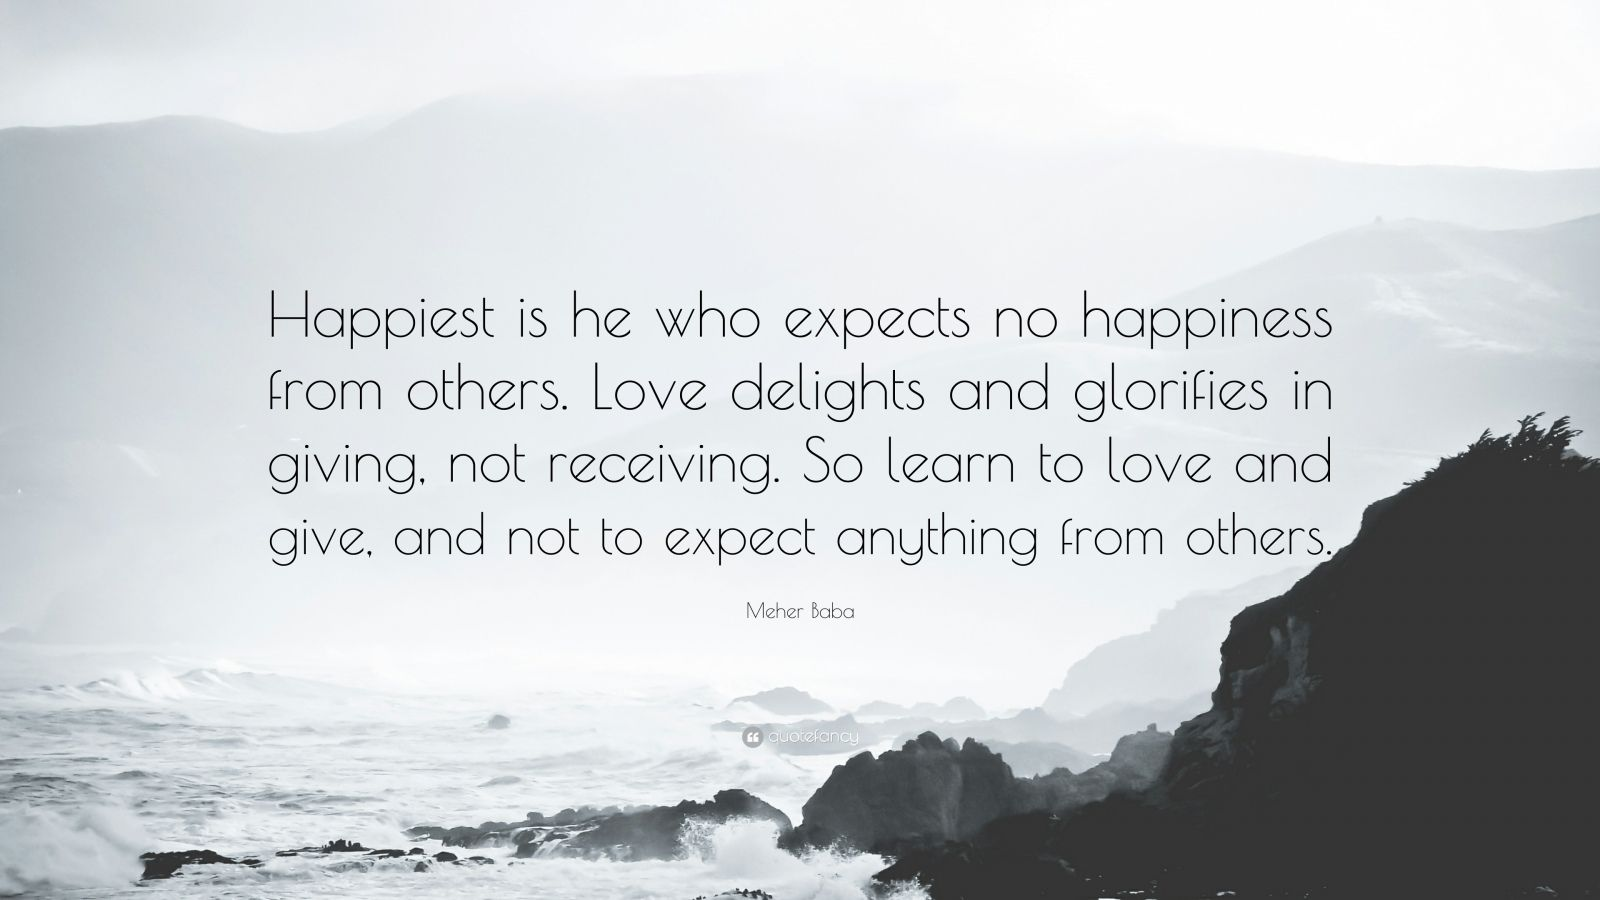 """Meher Baba Quote: """"Happiest is he who expects no happiness from others. Love delights and glorifies in giving, not receiving. So learn to love and give, and not to expect anything from others."""""""